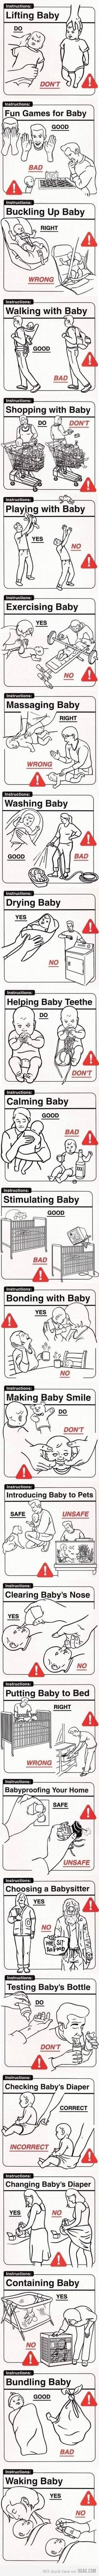 Baby Dos and Don'ts - this literally made me laugh until I was crying.  Scary to think some people might actually need these illustrations!!